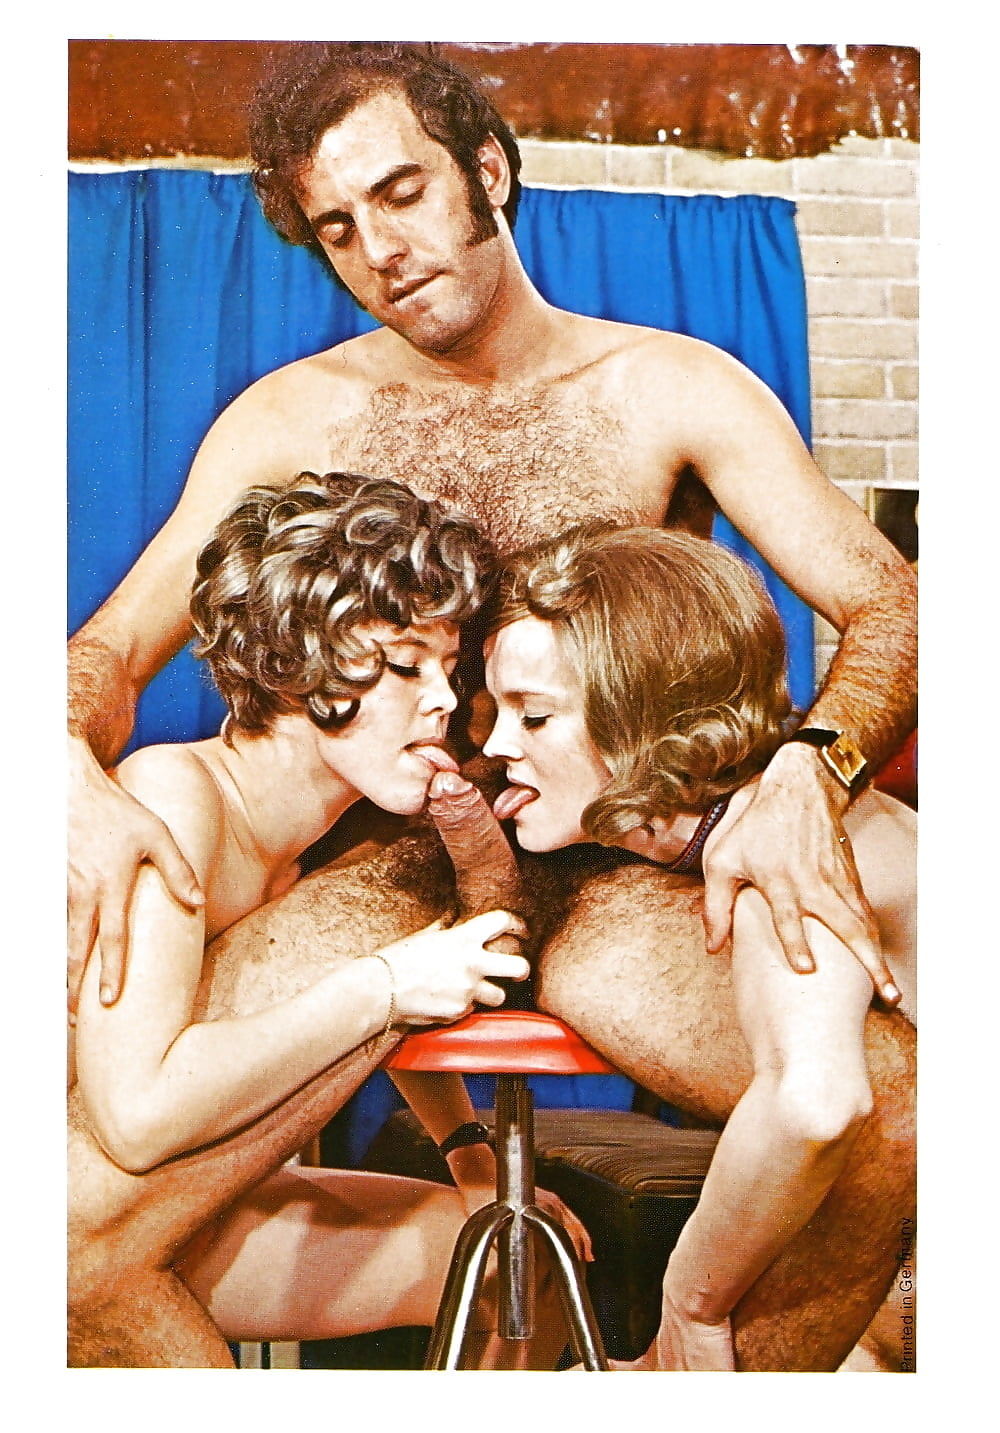 Carl in another mmf bisex scene - 2 8